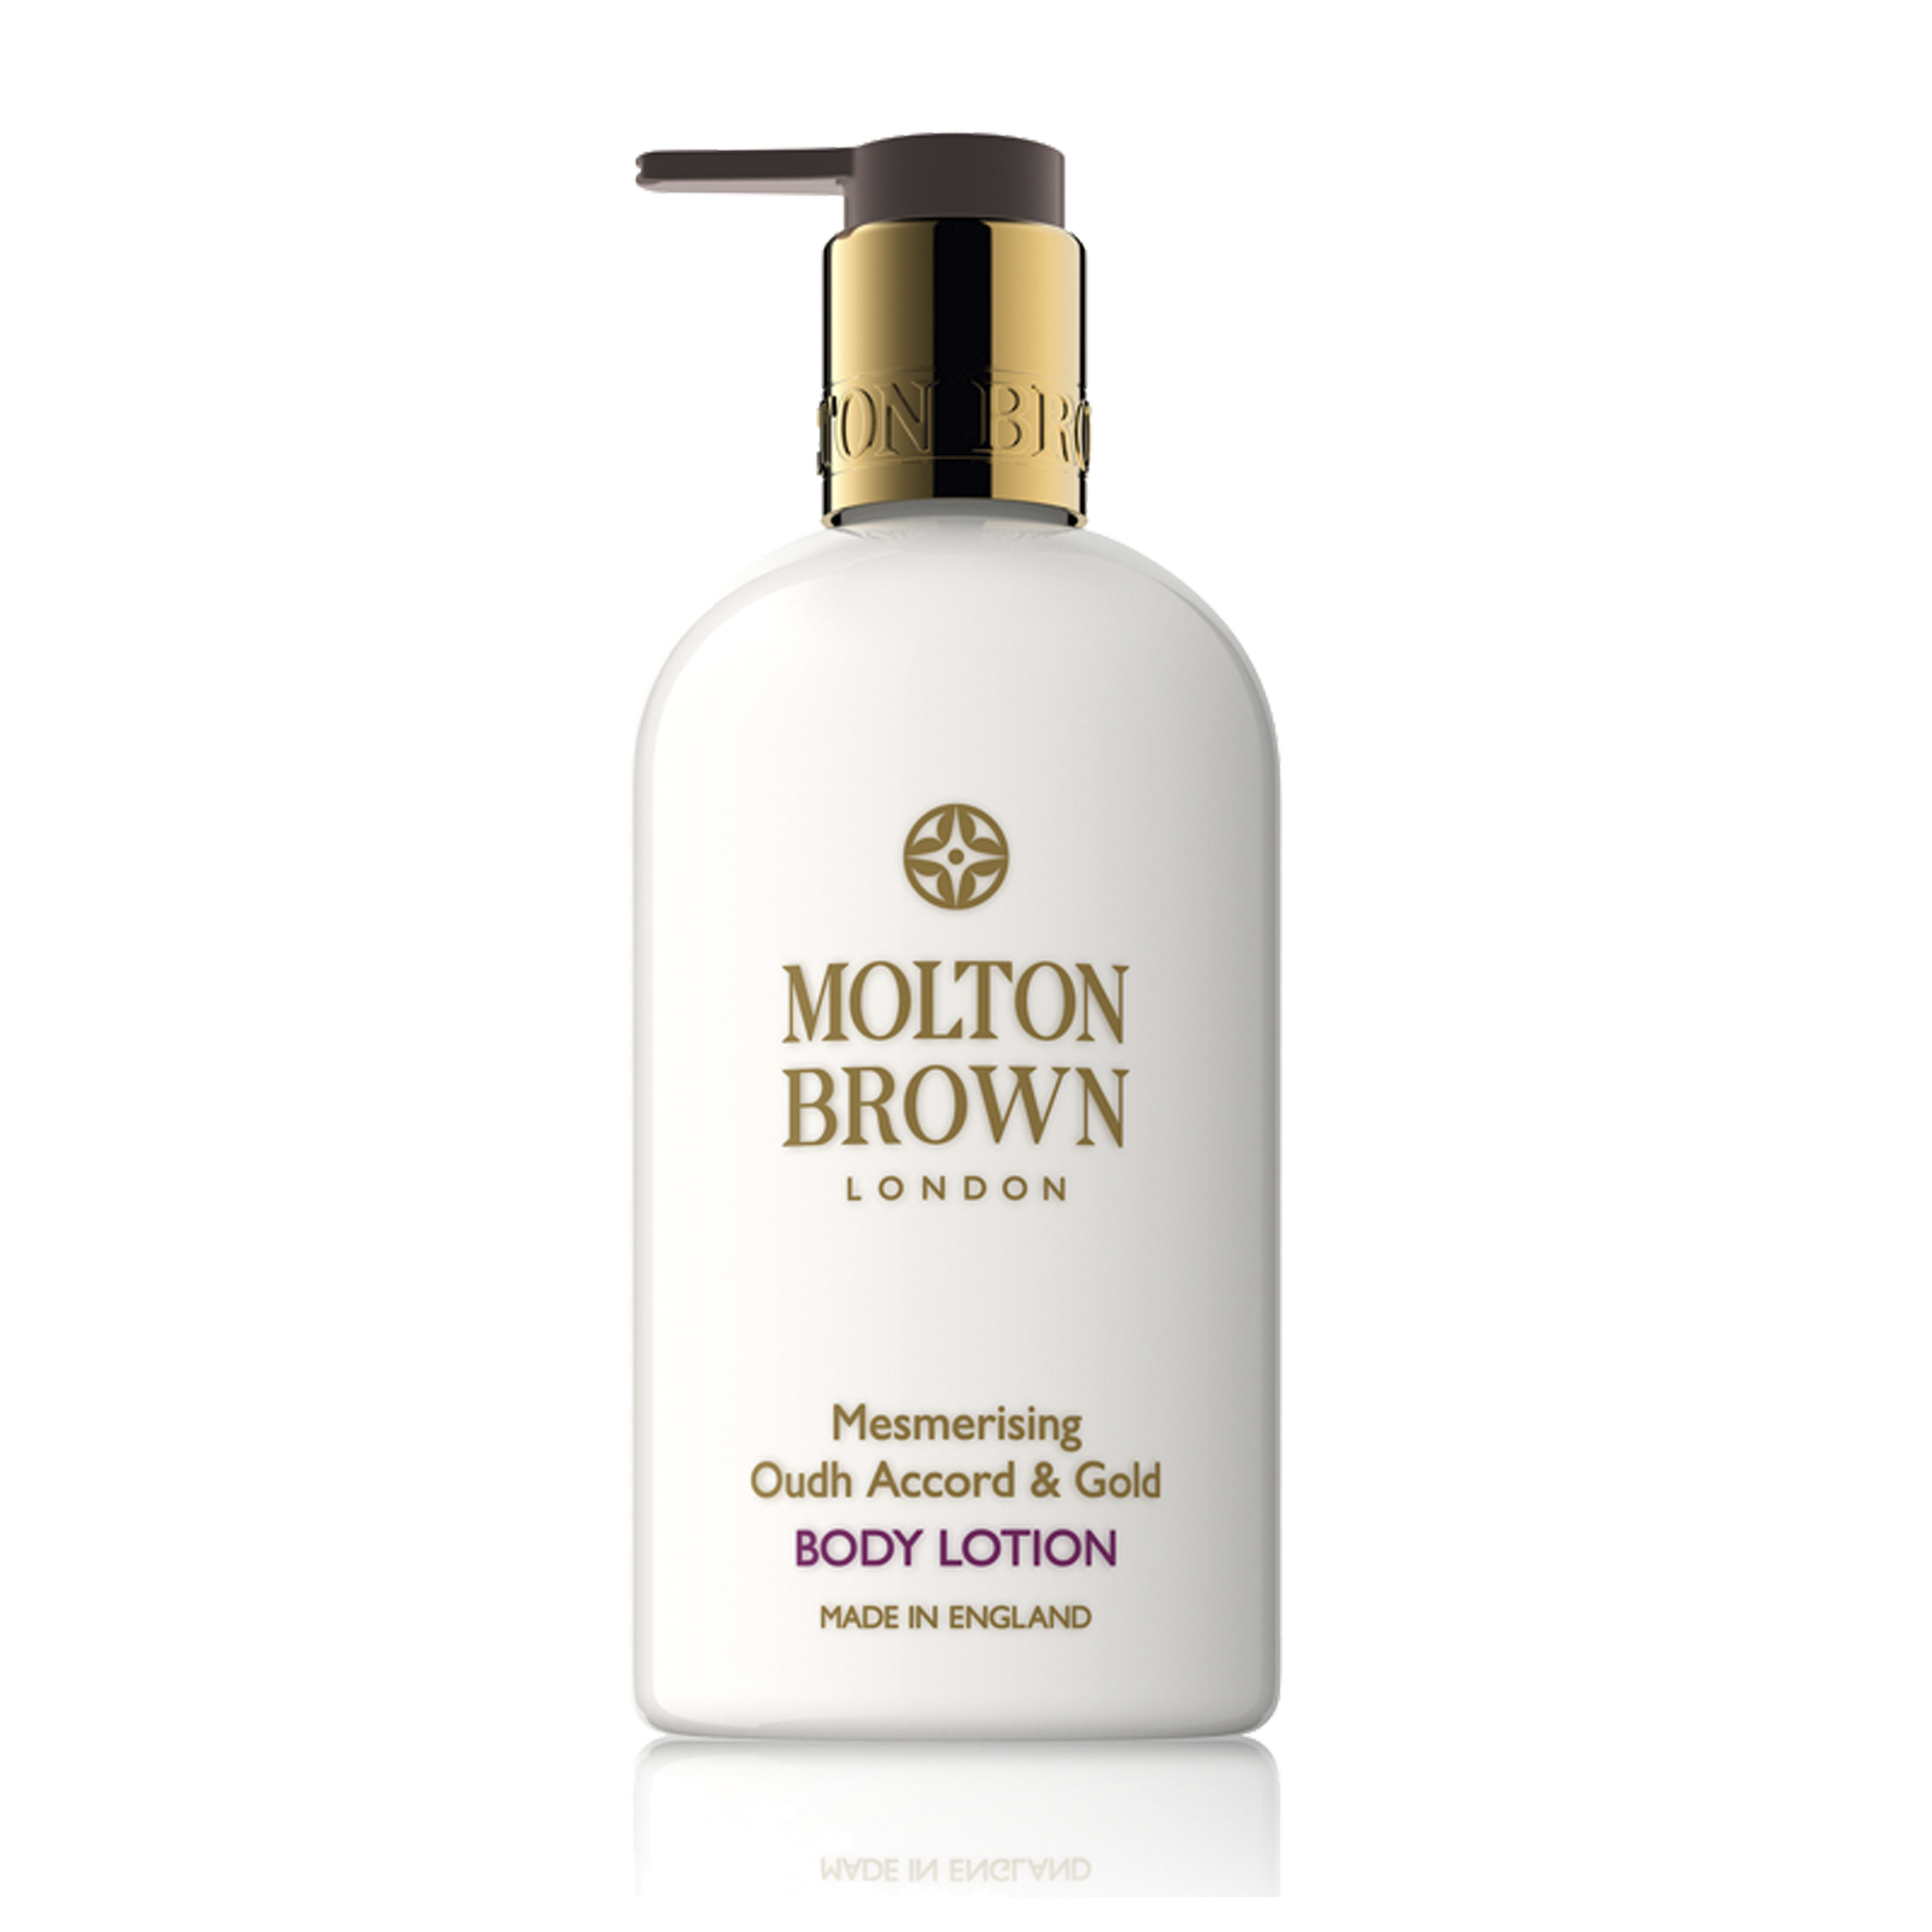 Oudh Accord & Gold Body Lotion Body Lotion 300ml